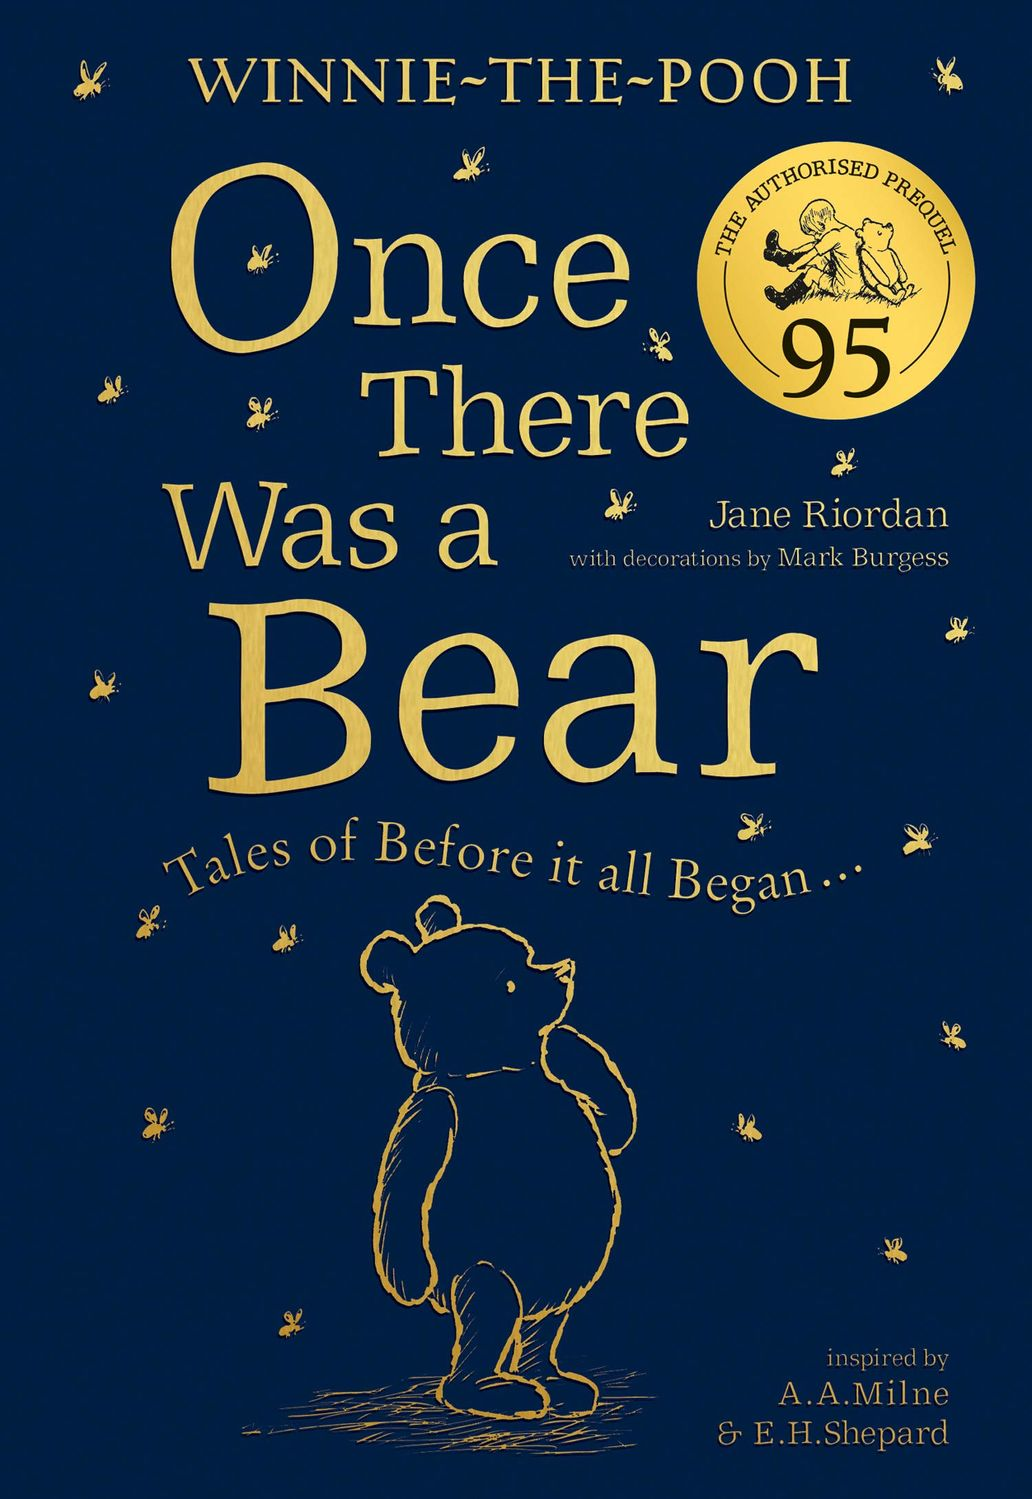 once there was a bear - THE EDGE SINGAPORE